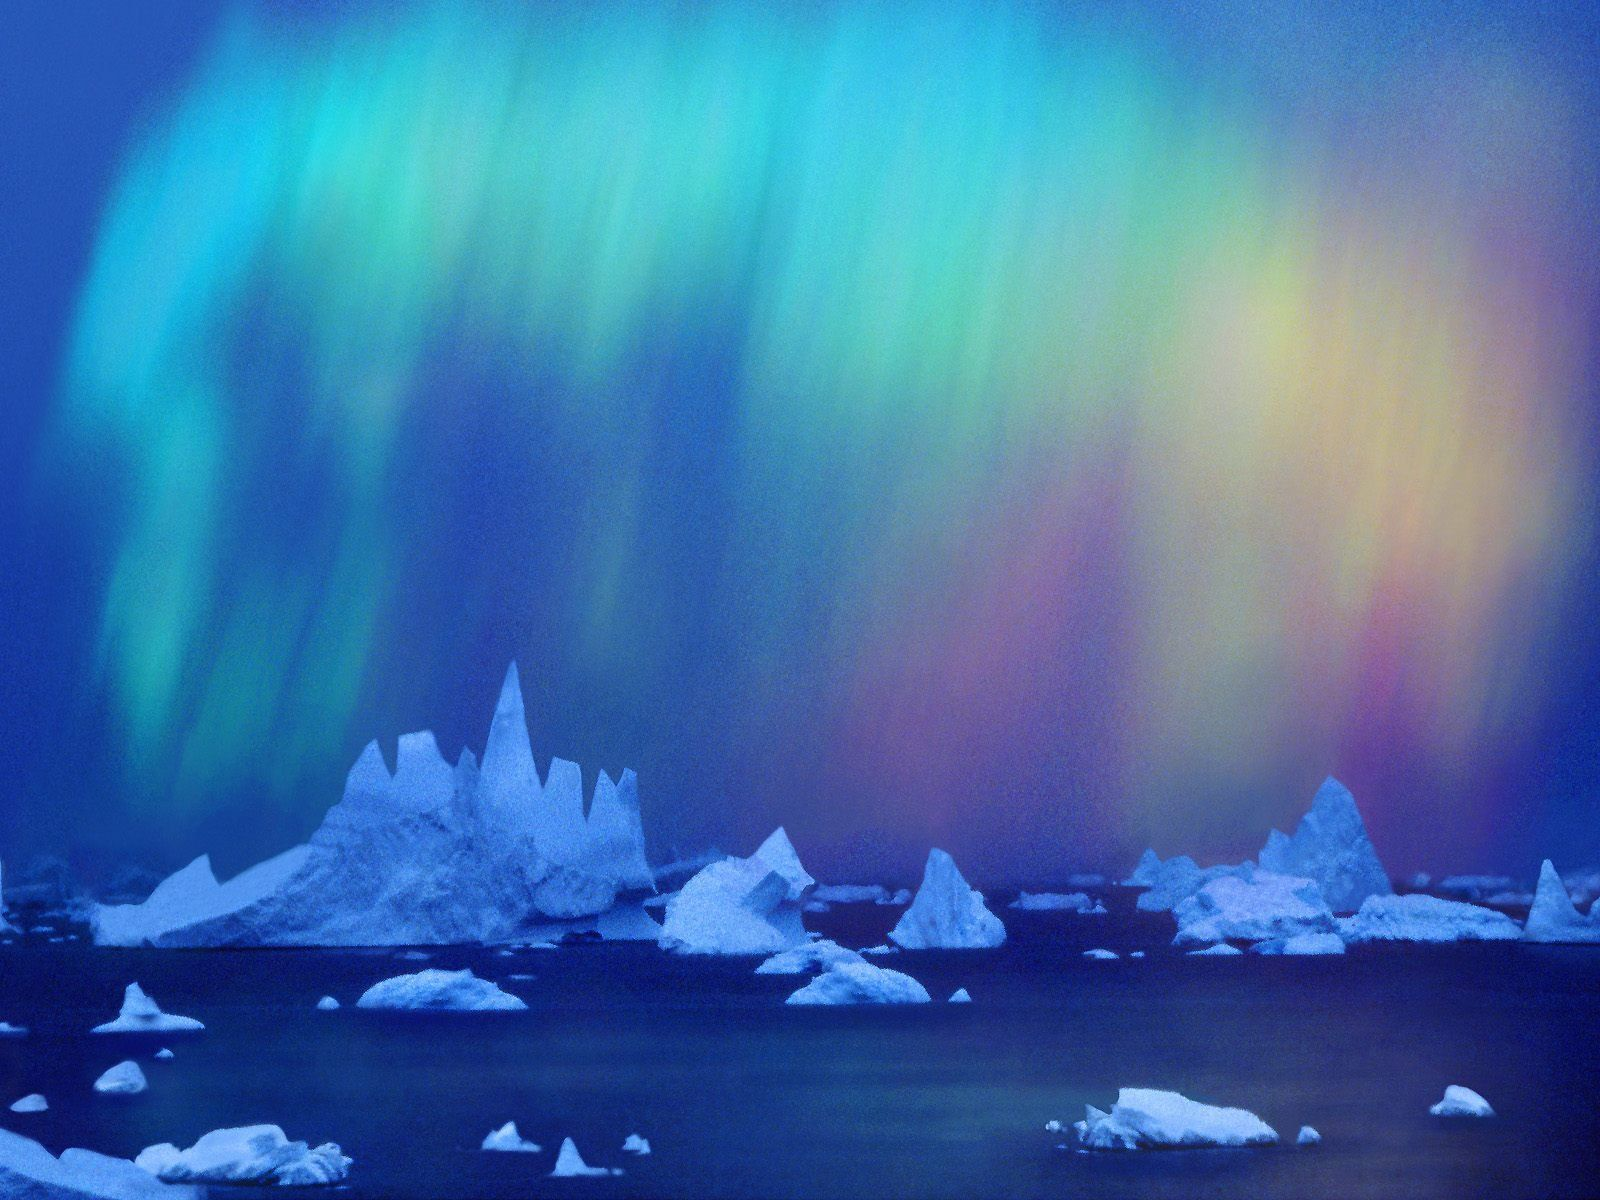 arctic ocean pictures ice caps at night arctic cold aurora australis southern light over icebergs bellingshausen sea ellsworth land antarctica aurora australis southern light over icebergs